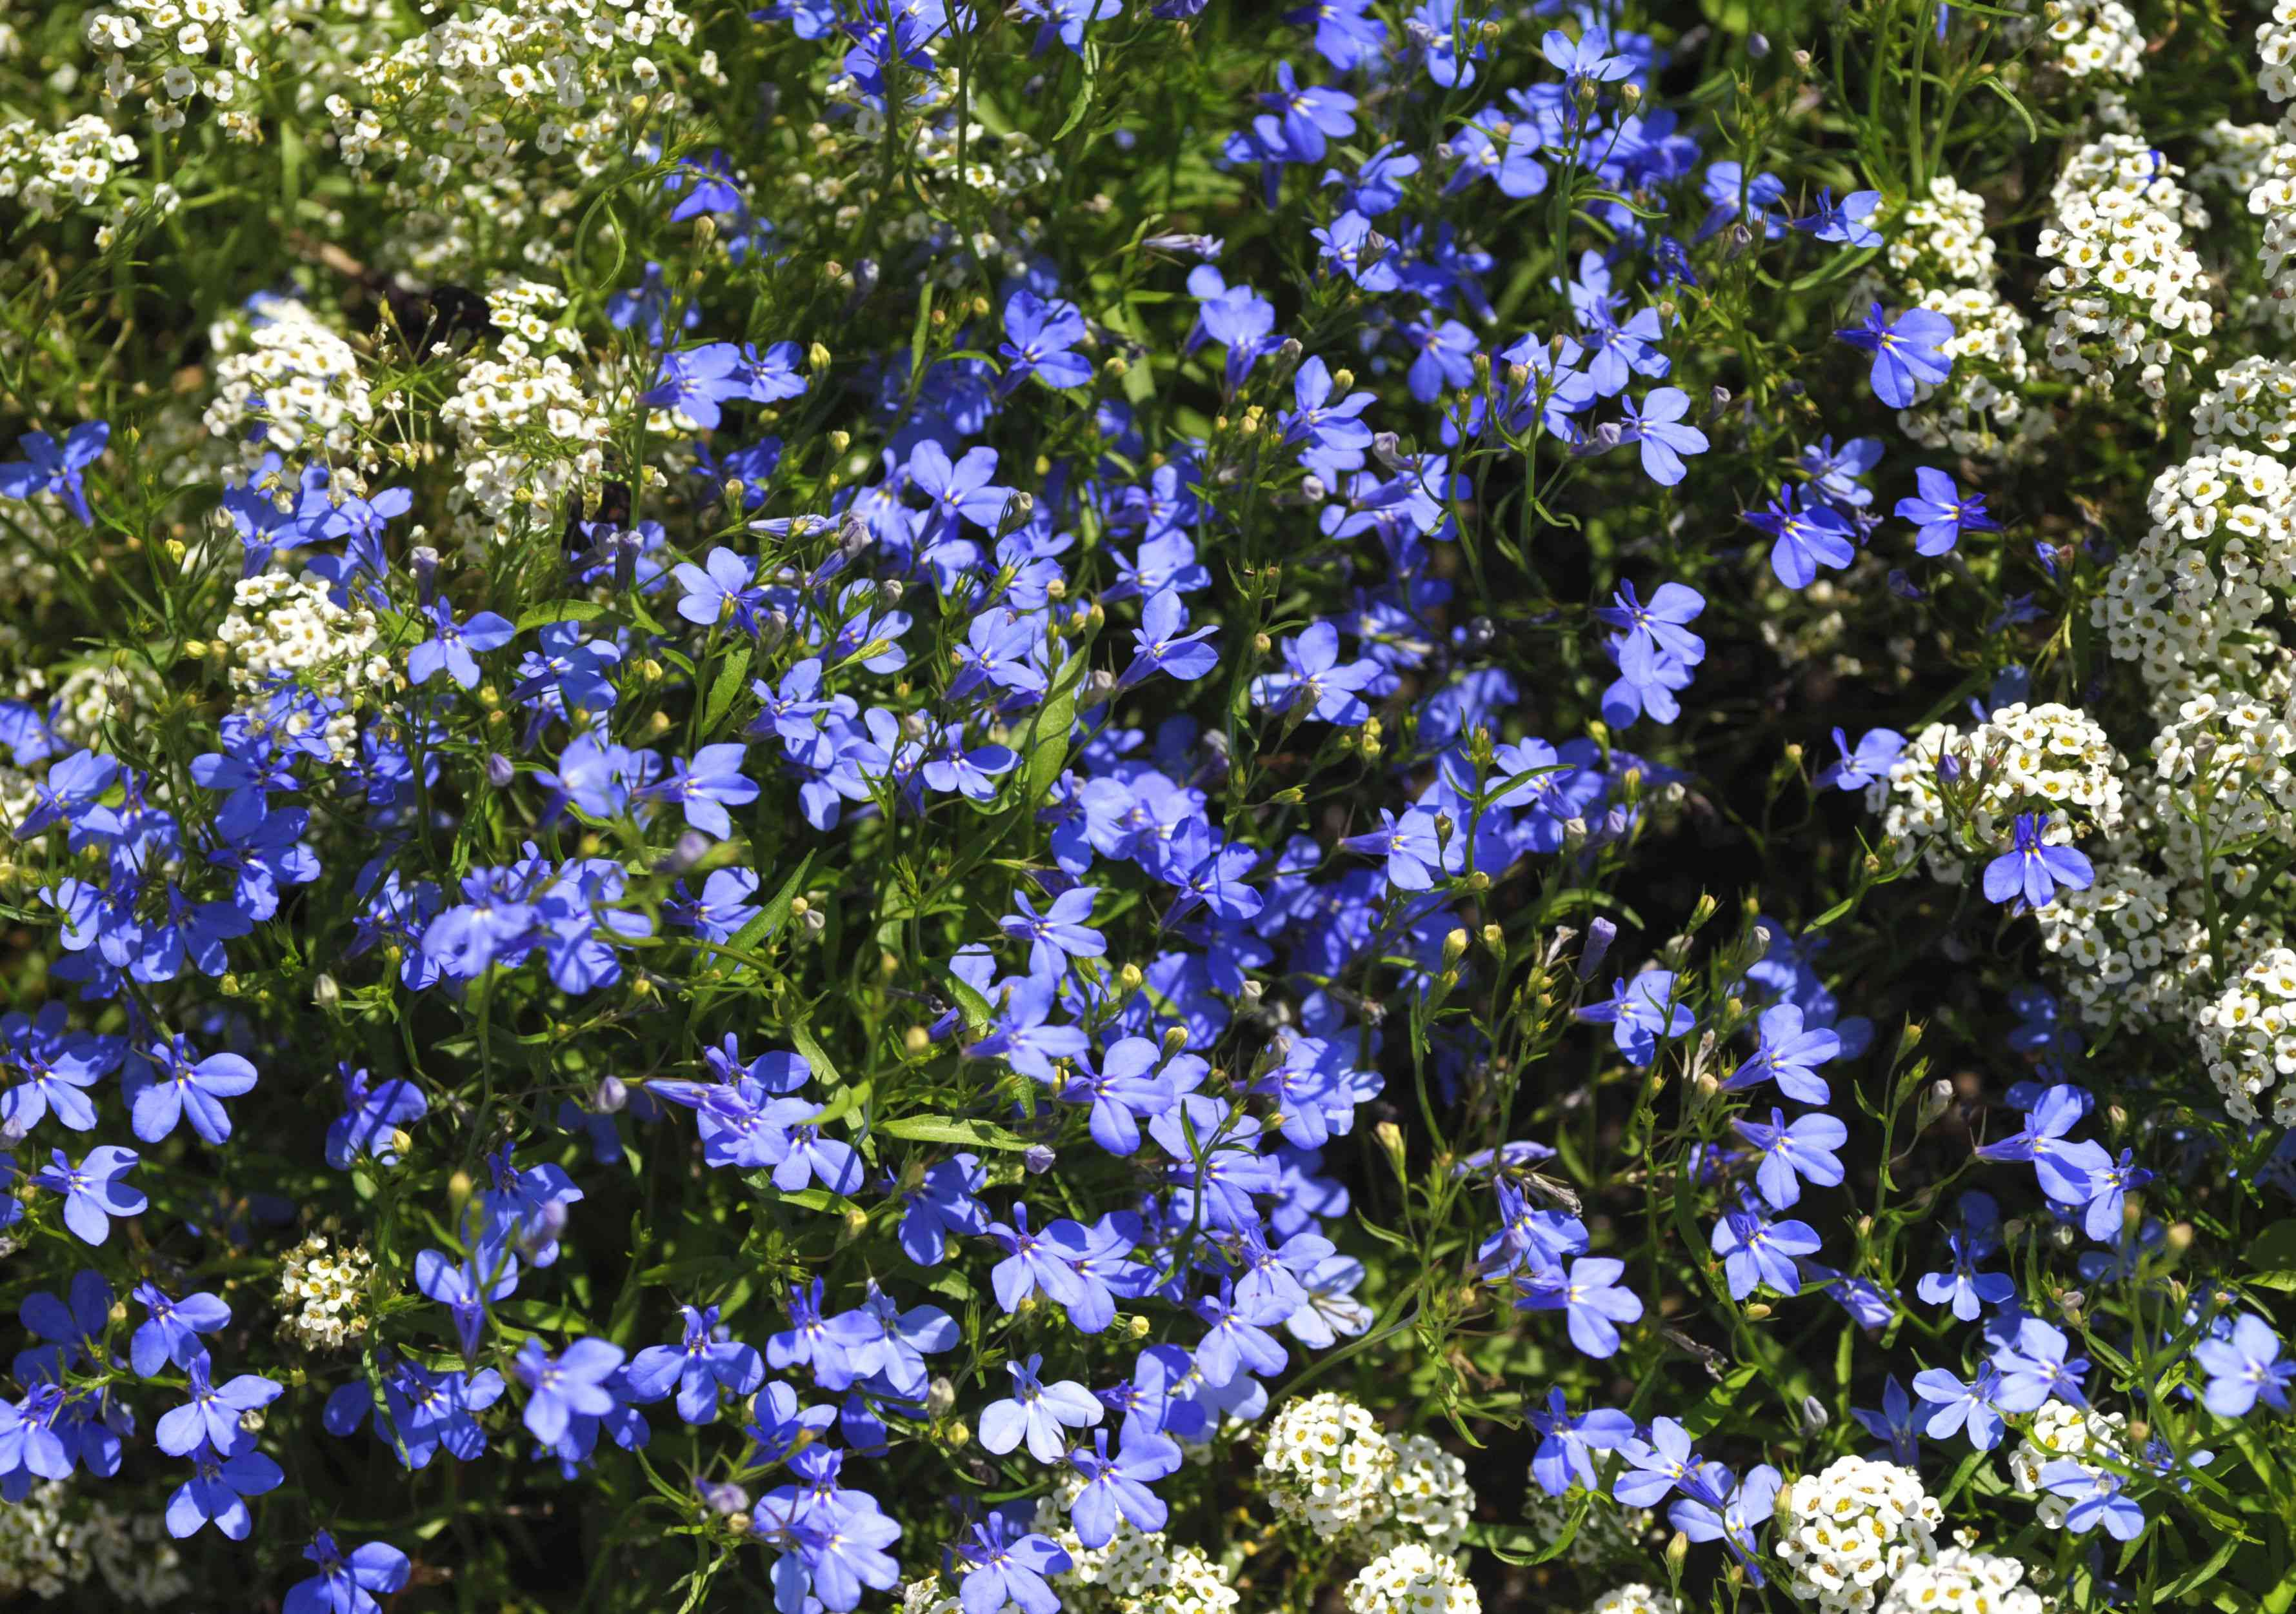 Lobelia plant with small blue-purple flowers in between leaves and small white flower clusters